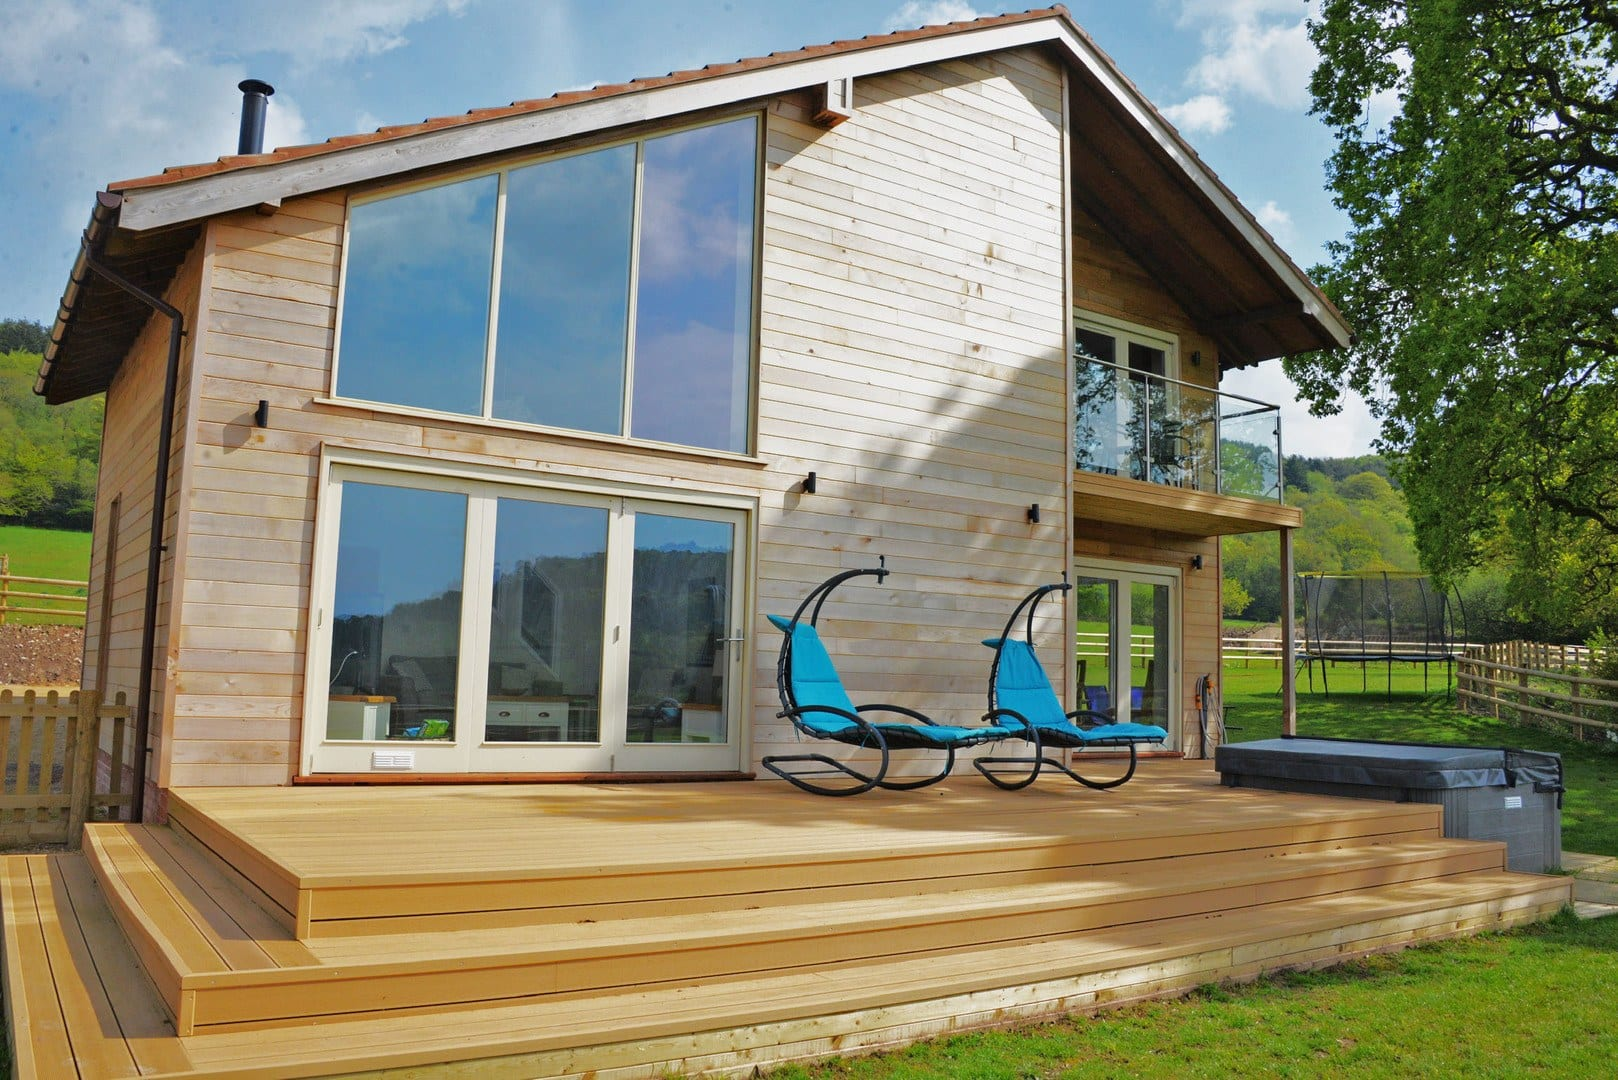 Eco House in Devon, relax on the tweak decking or our yourself a glass of bubbles and sit back in the hot tub taking in the breathtaking views around you